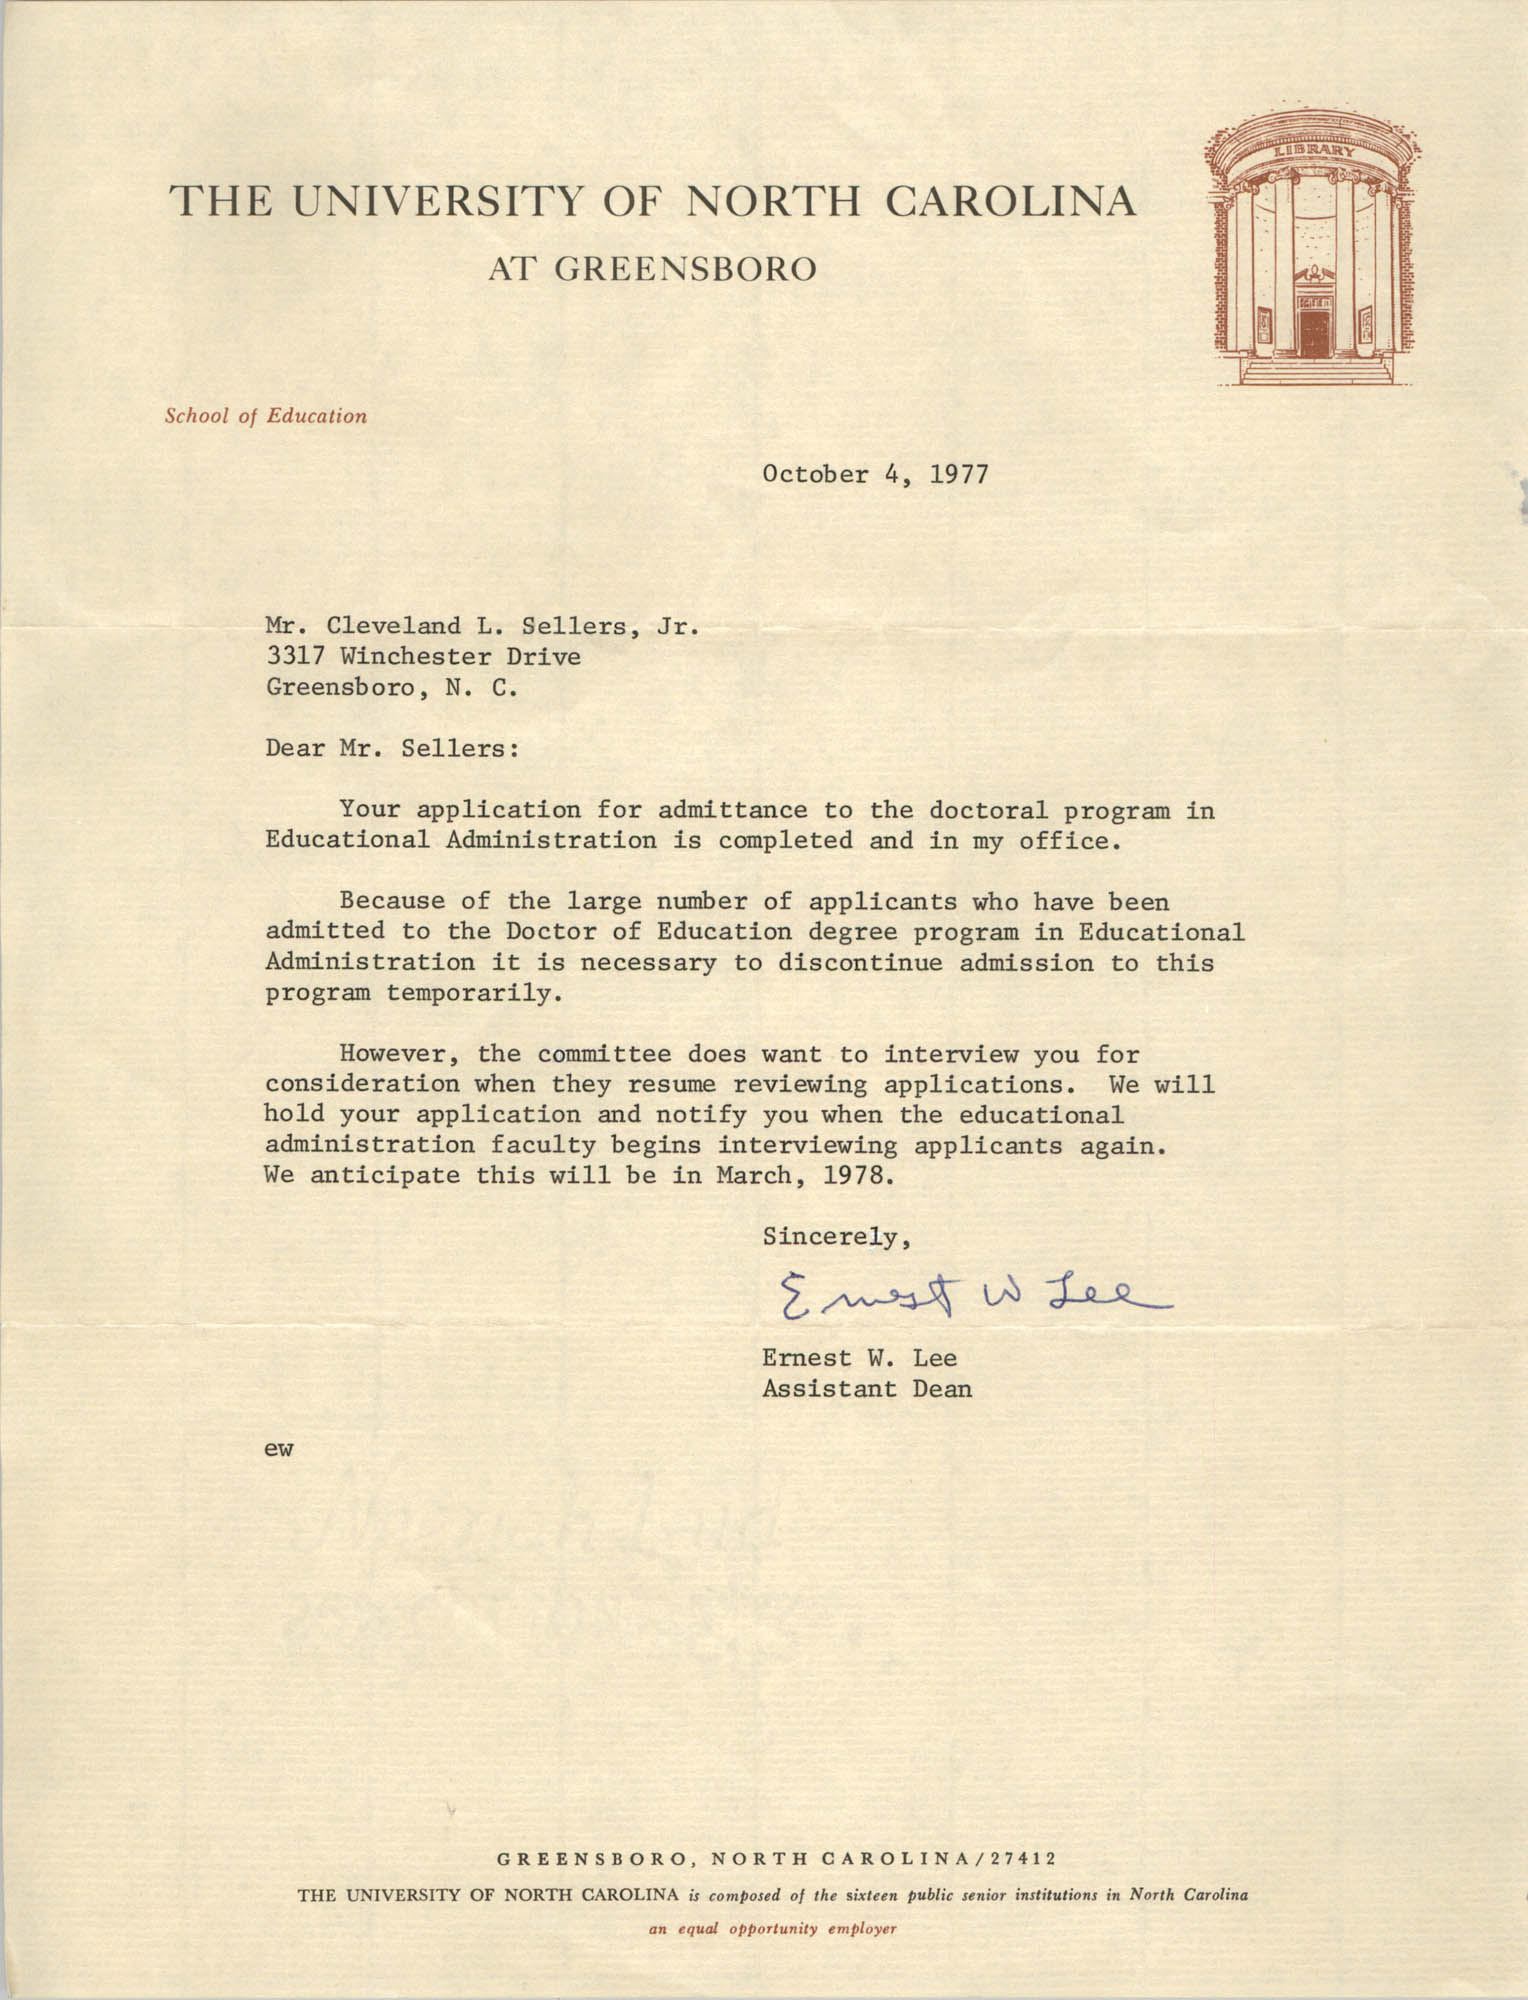 Letter from Ernest W. Lee to Cleveland Sellers, October 4, 1977